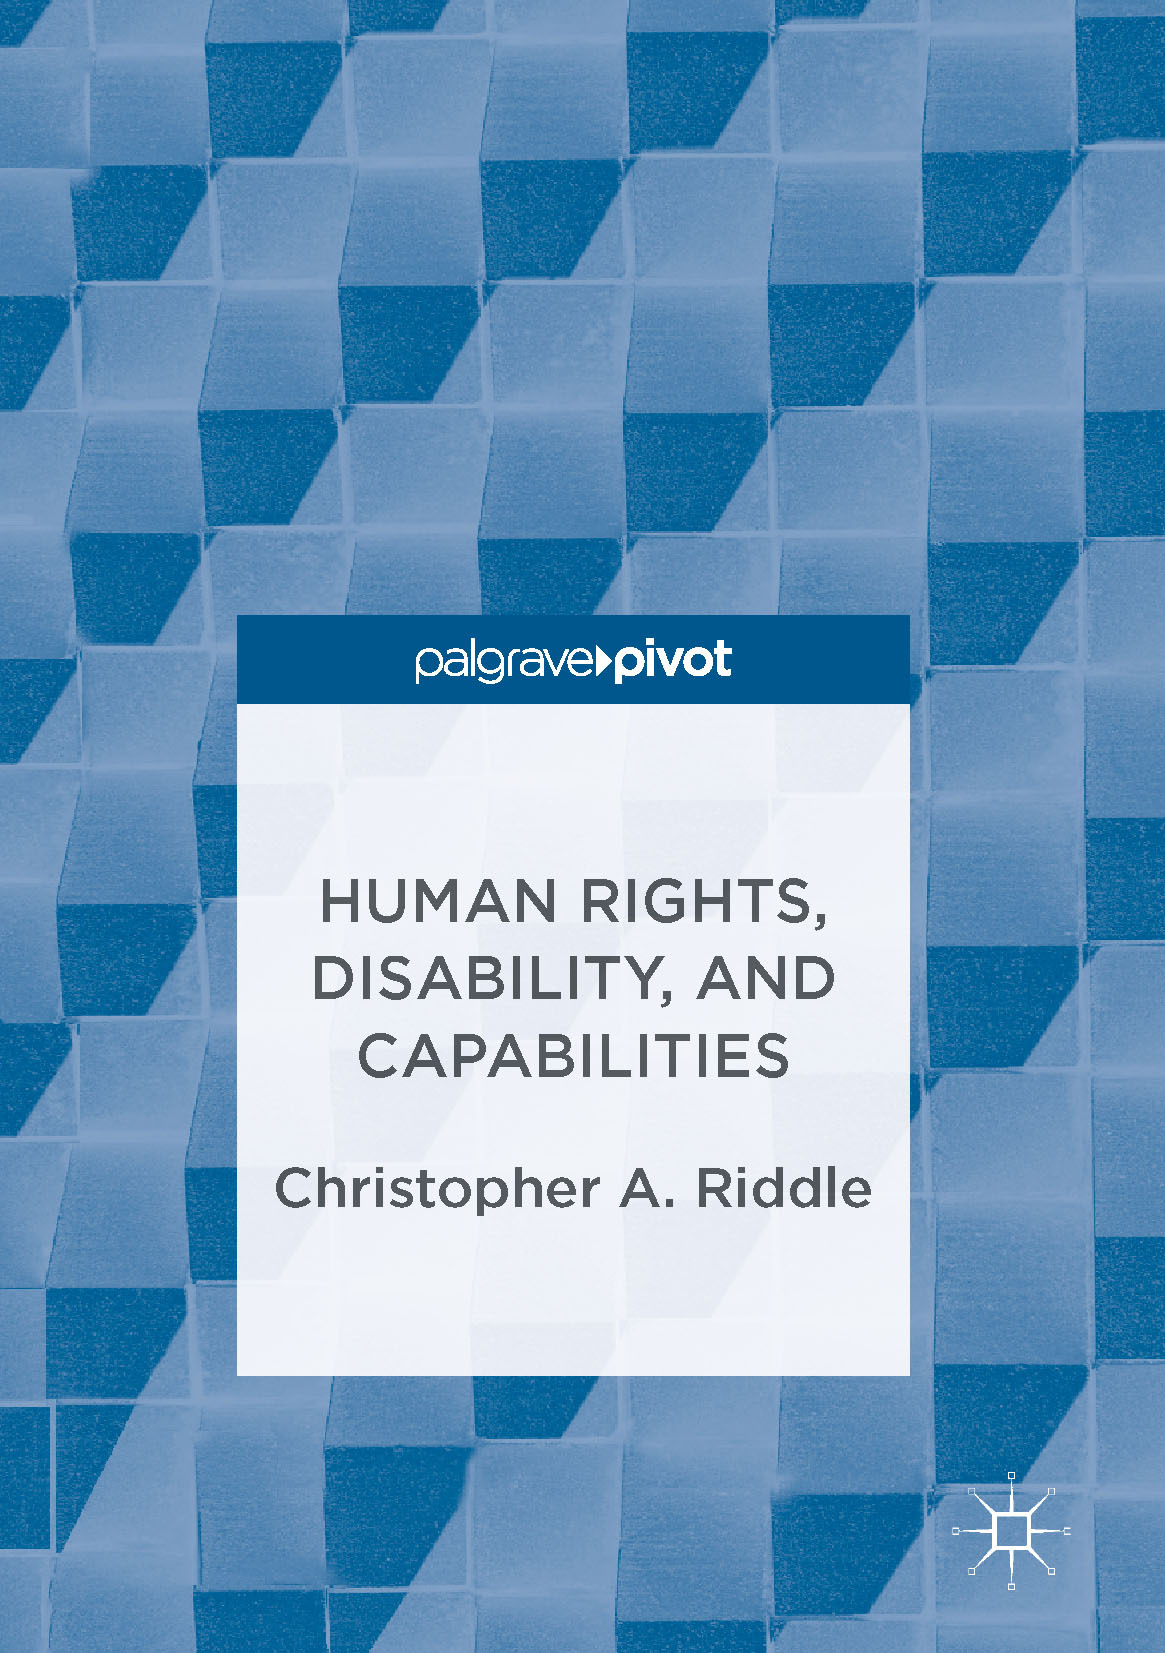 Riddle, Christopher A. - Human Rights, Disability, and Capabilities, ebook